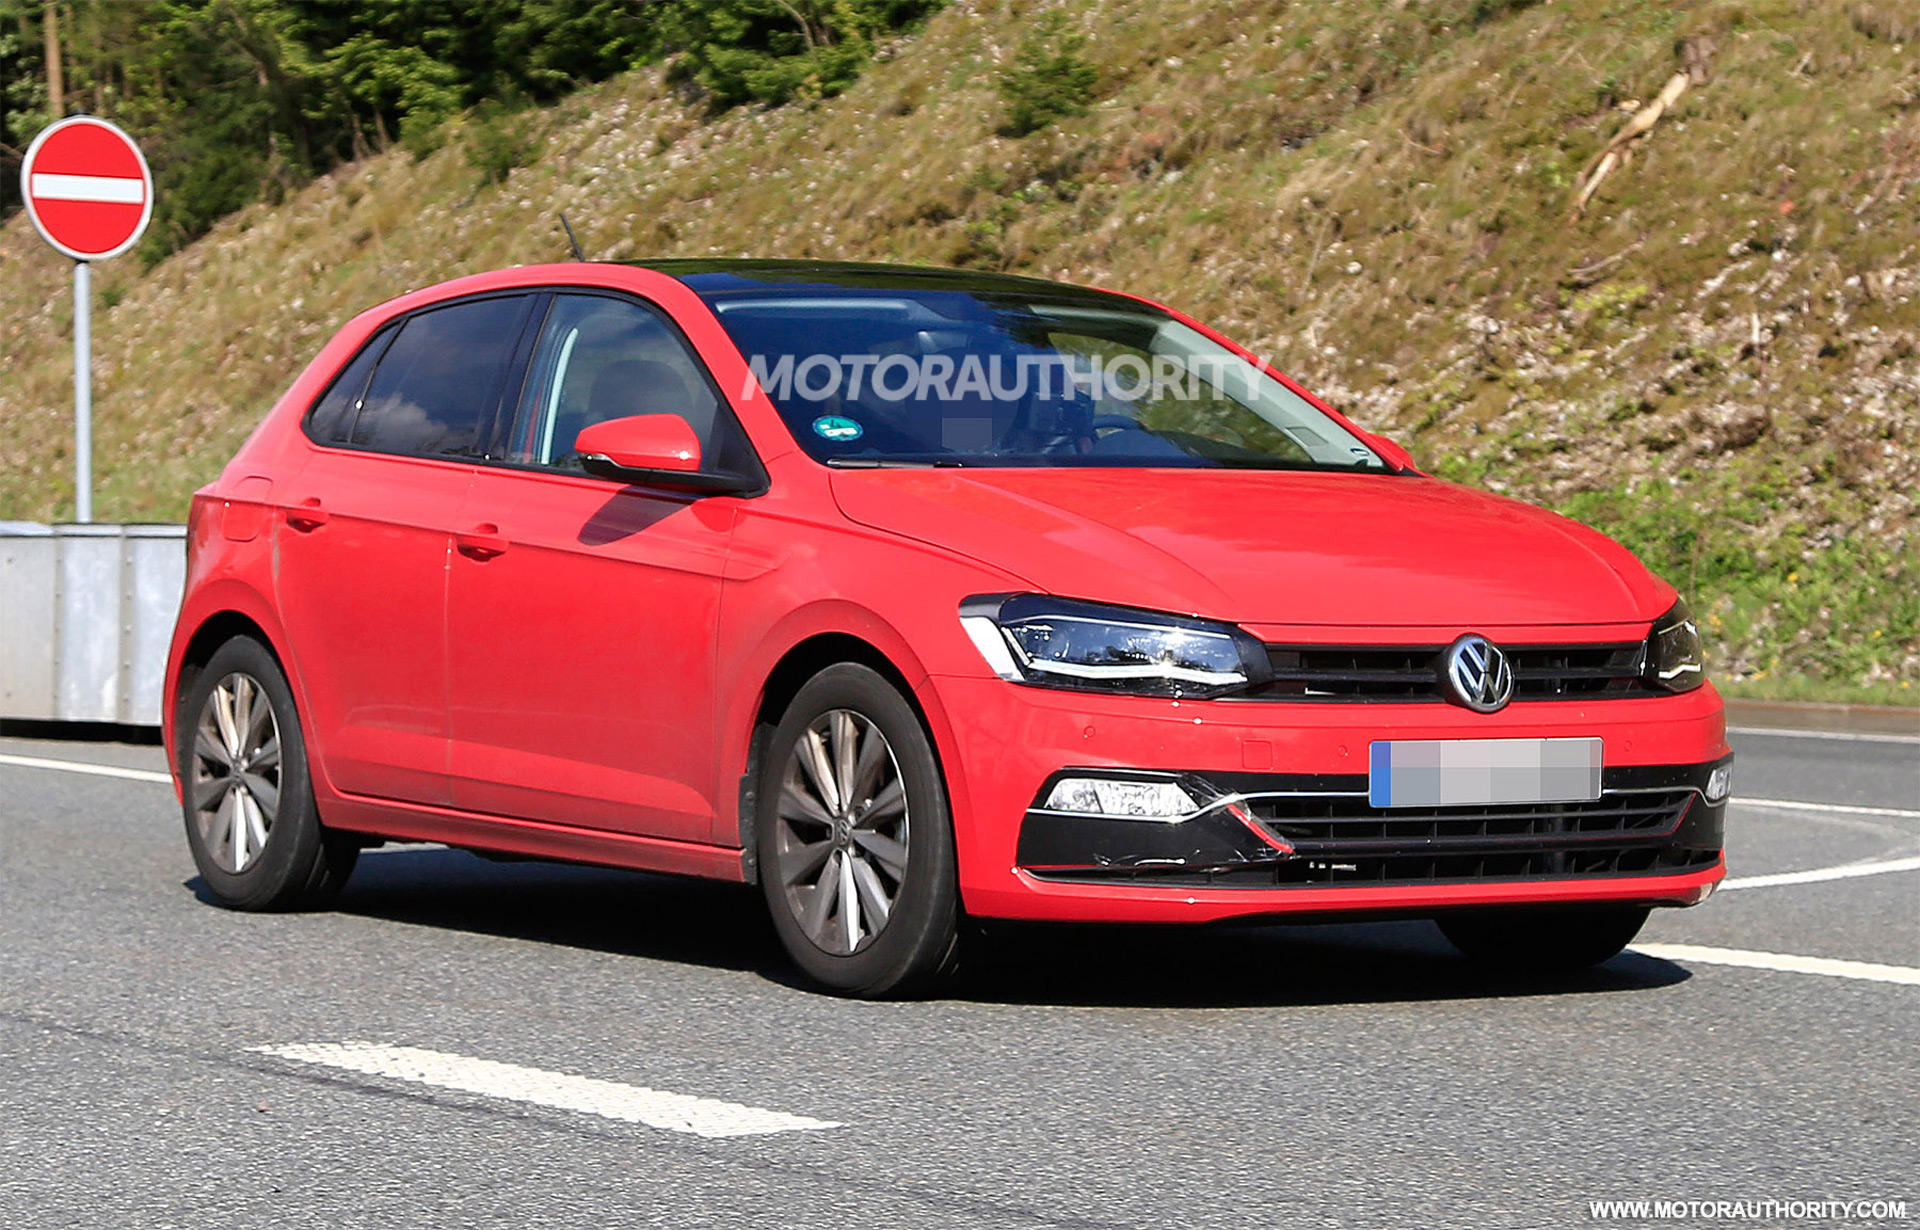 2018 Volkswagen Gti Review >> 2018 Volkswagen Polo spy shots and video